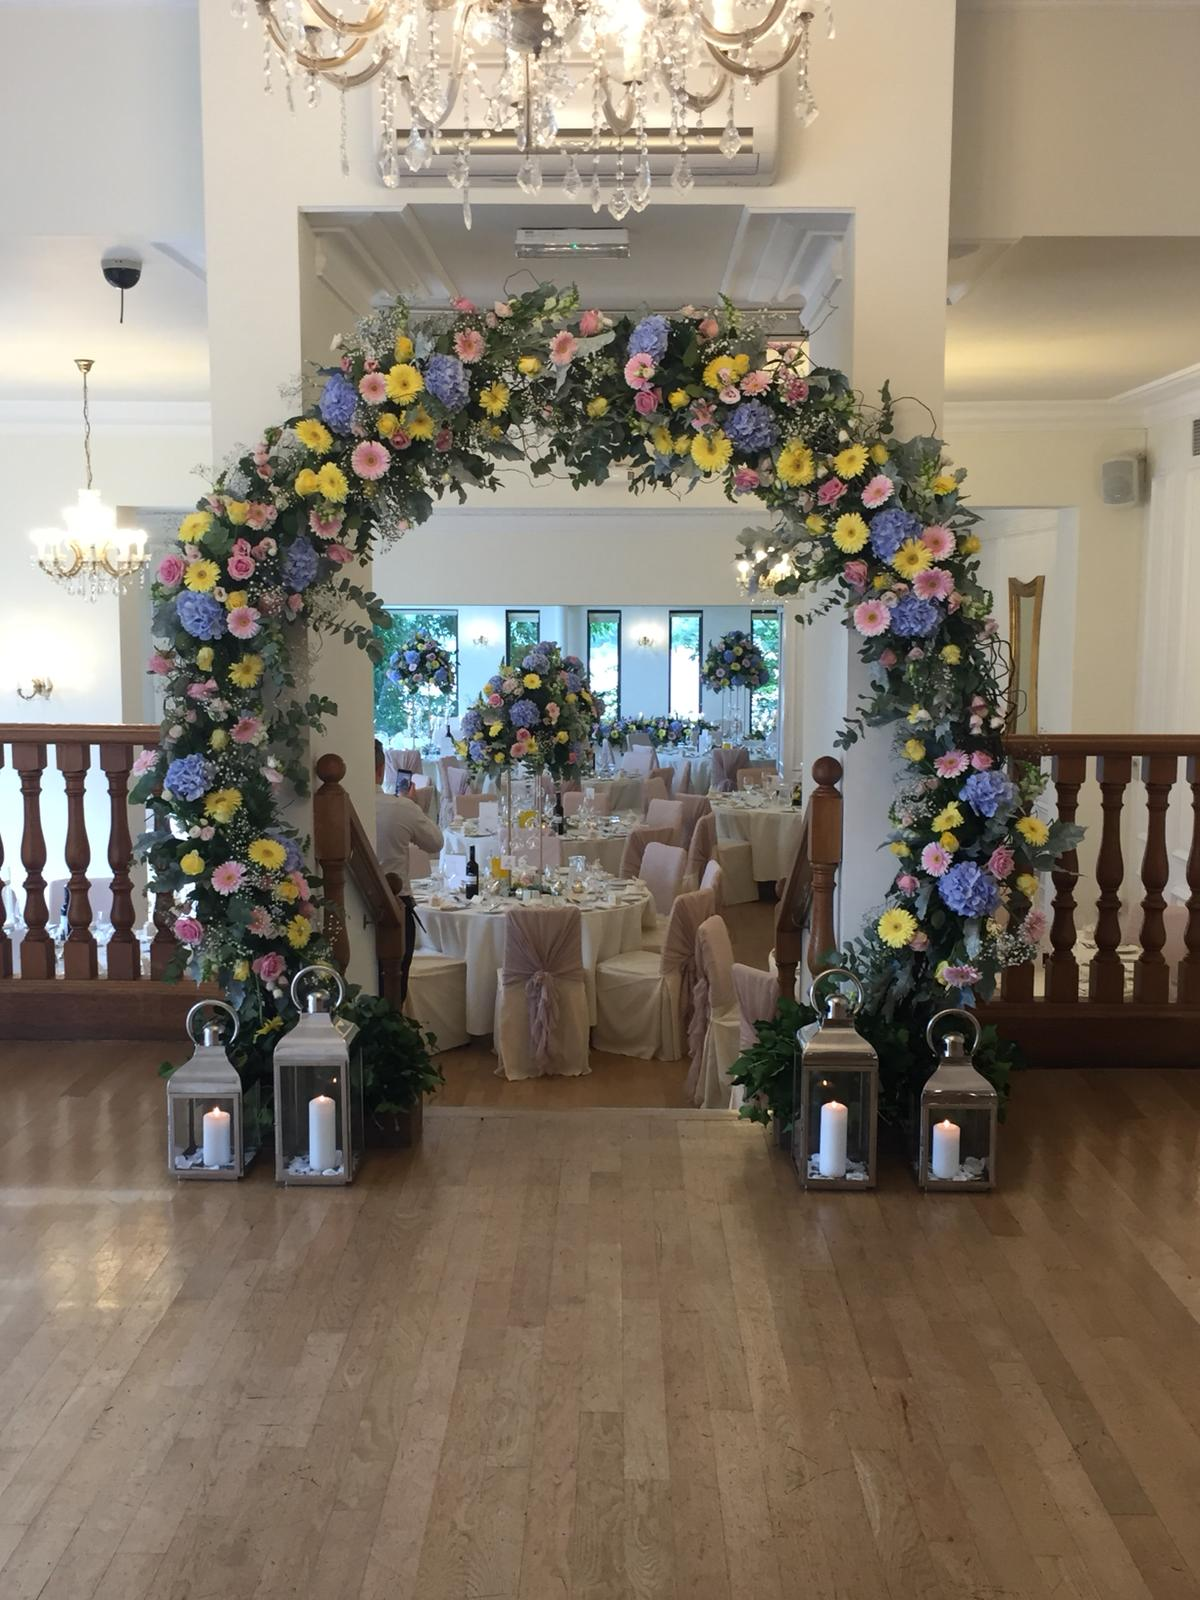 Floral arch in the Ballroom at West Tower on a midweek wedding day